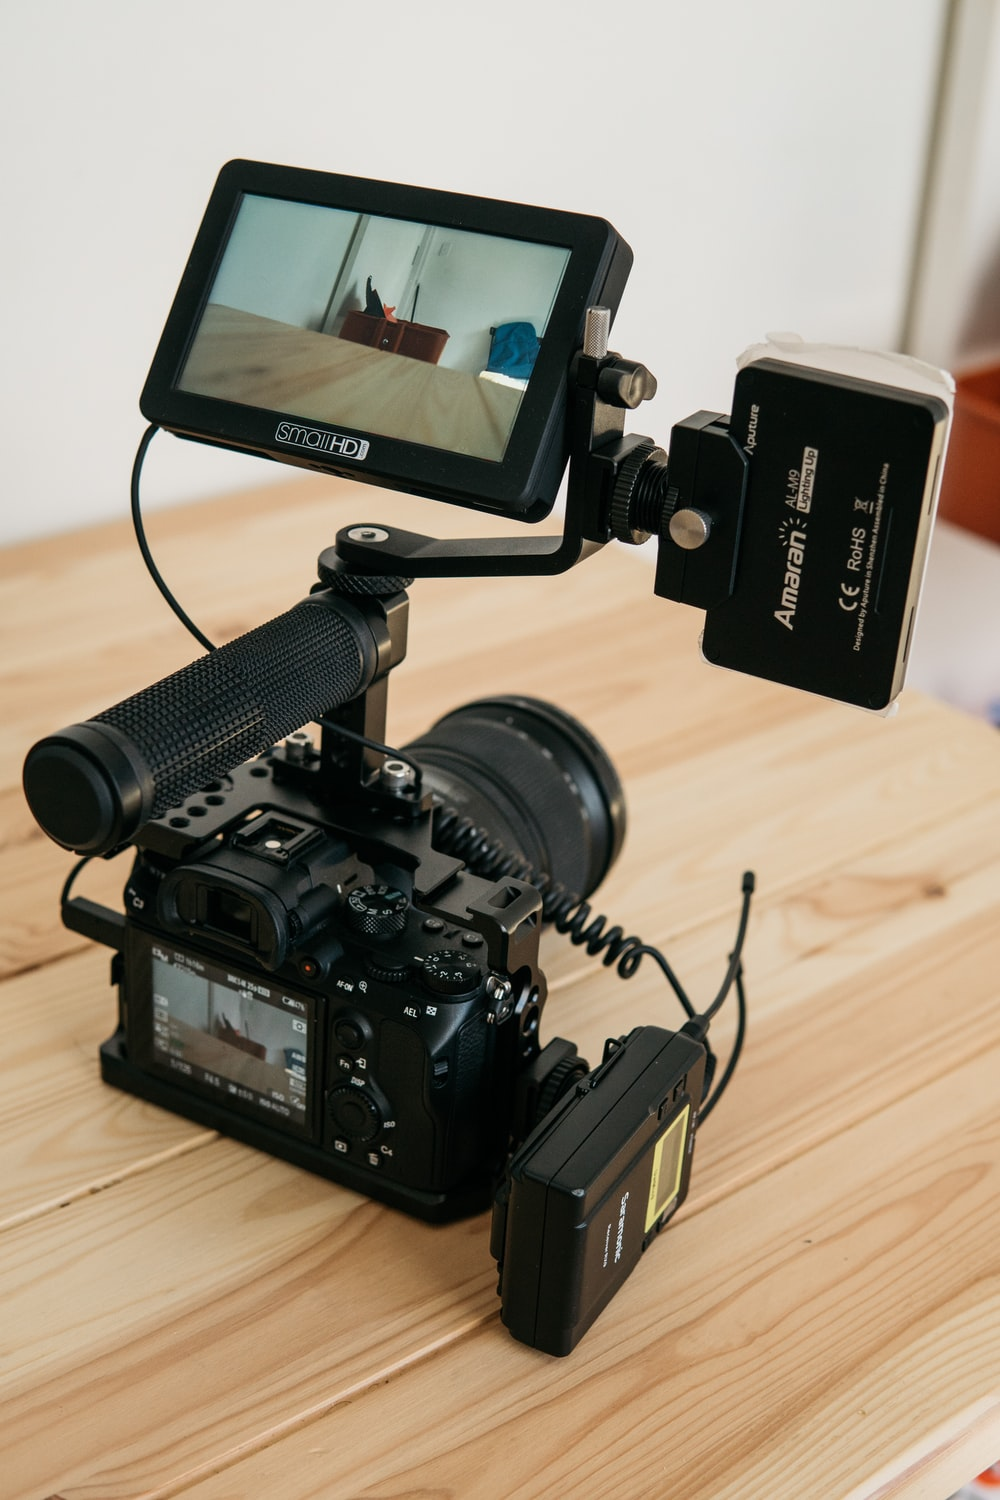 turned-on DSLR camera and displaying table top